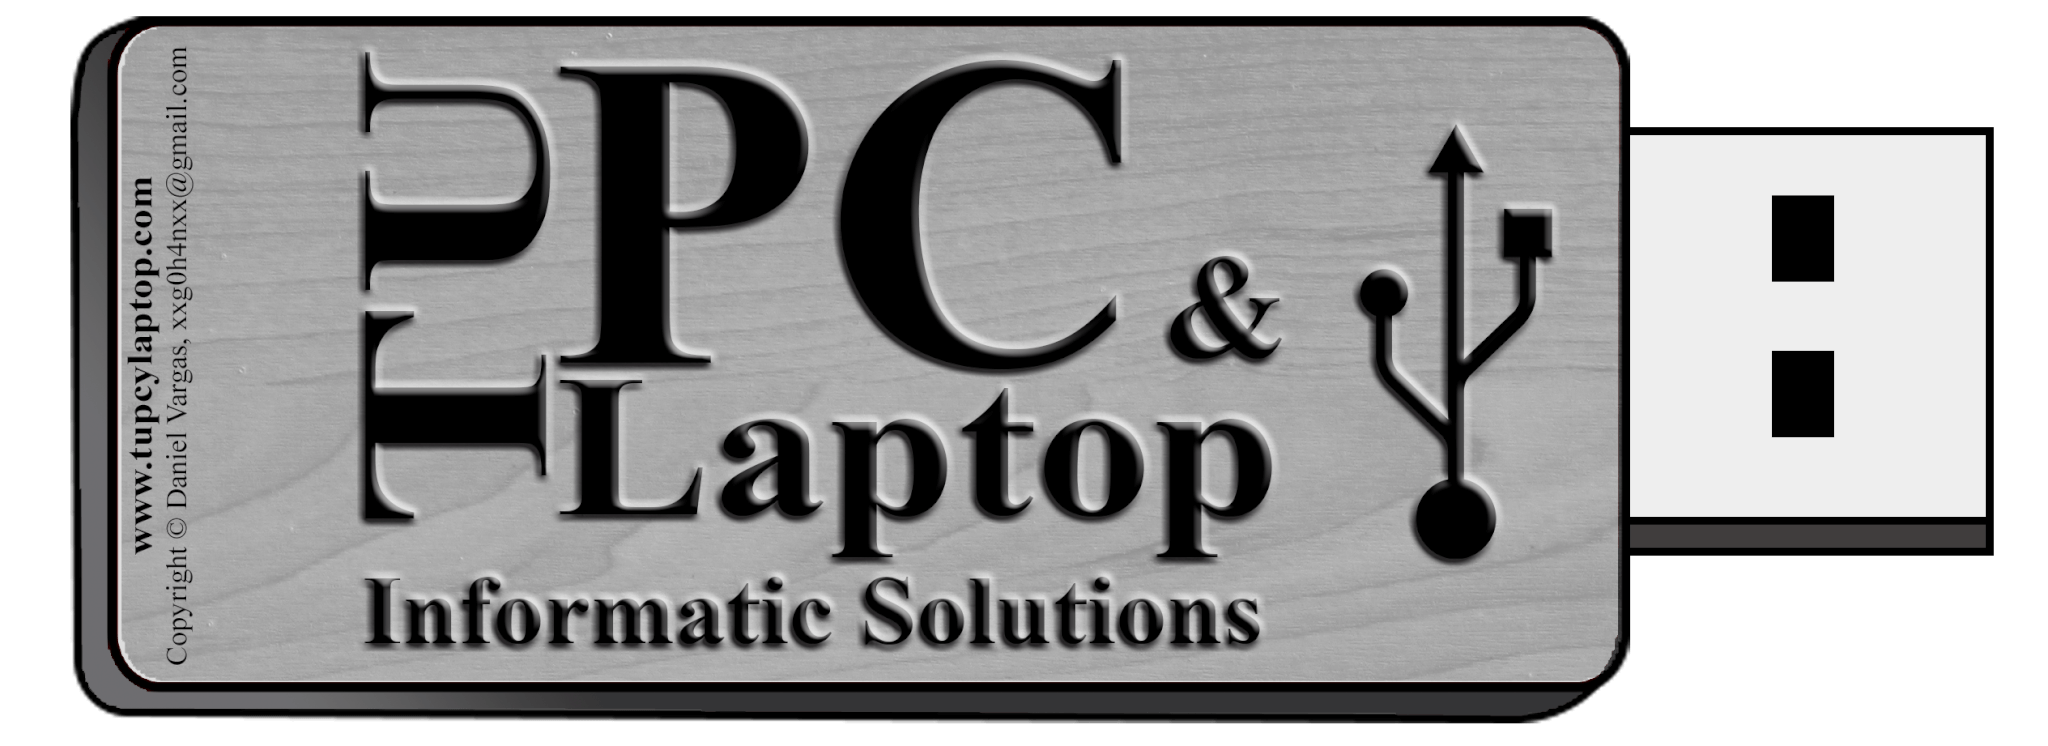 tu pc y laptop